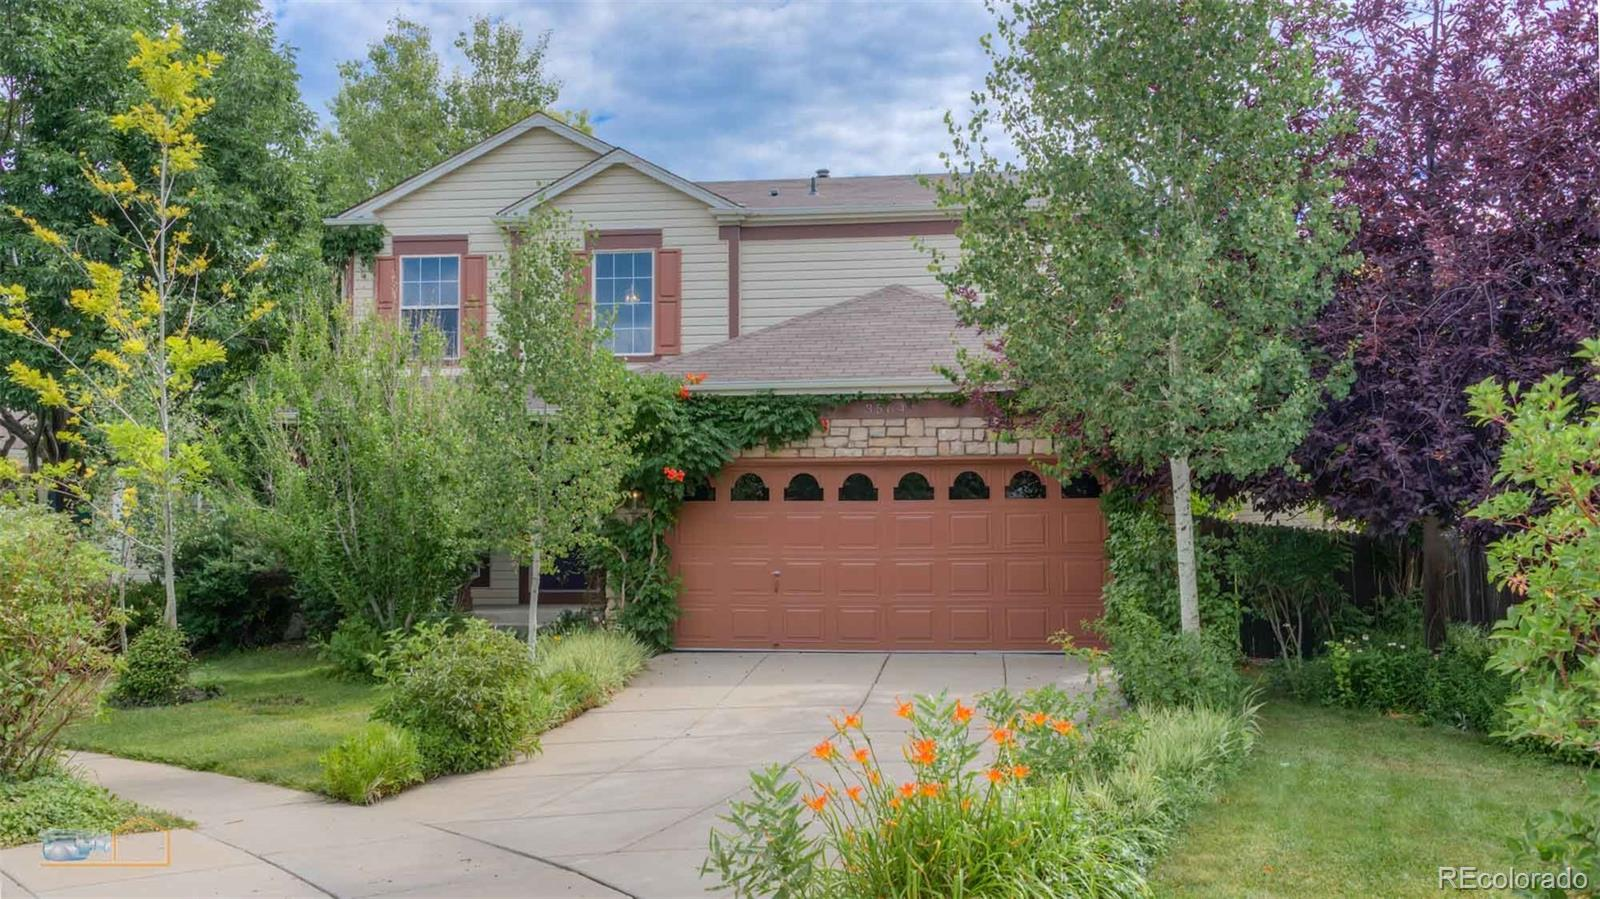 MLS# 9228785 - 1 - 3564 Larkspur Drive, Longmont, CO 80503